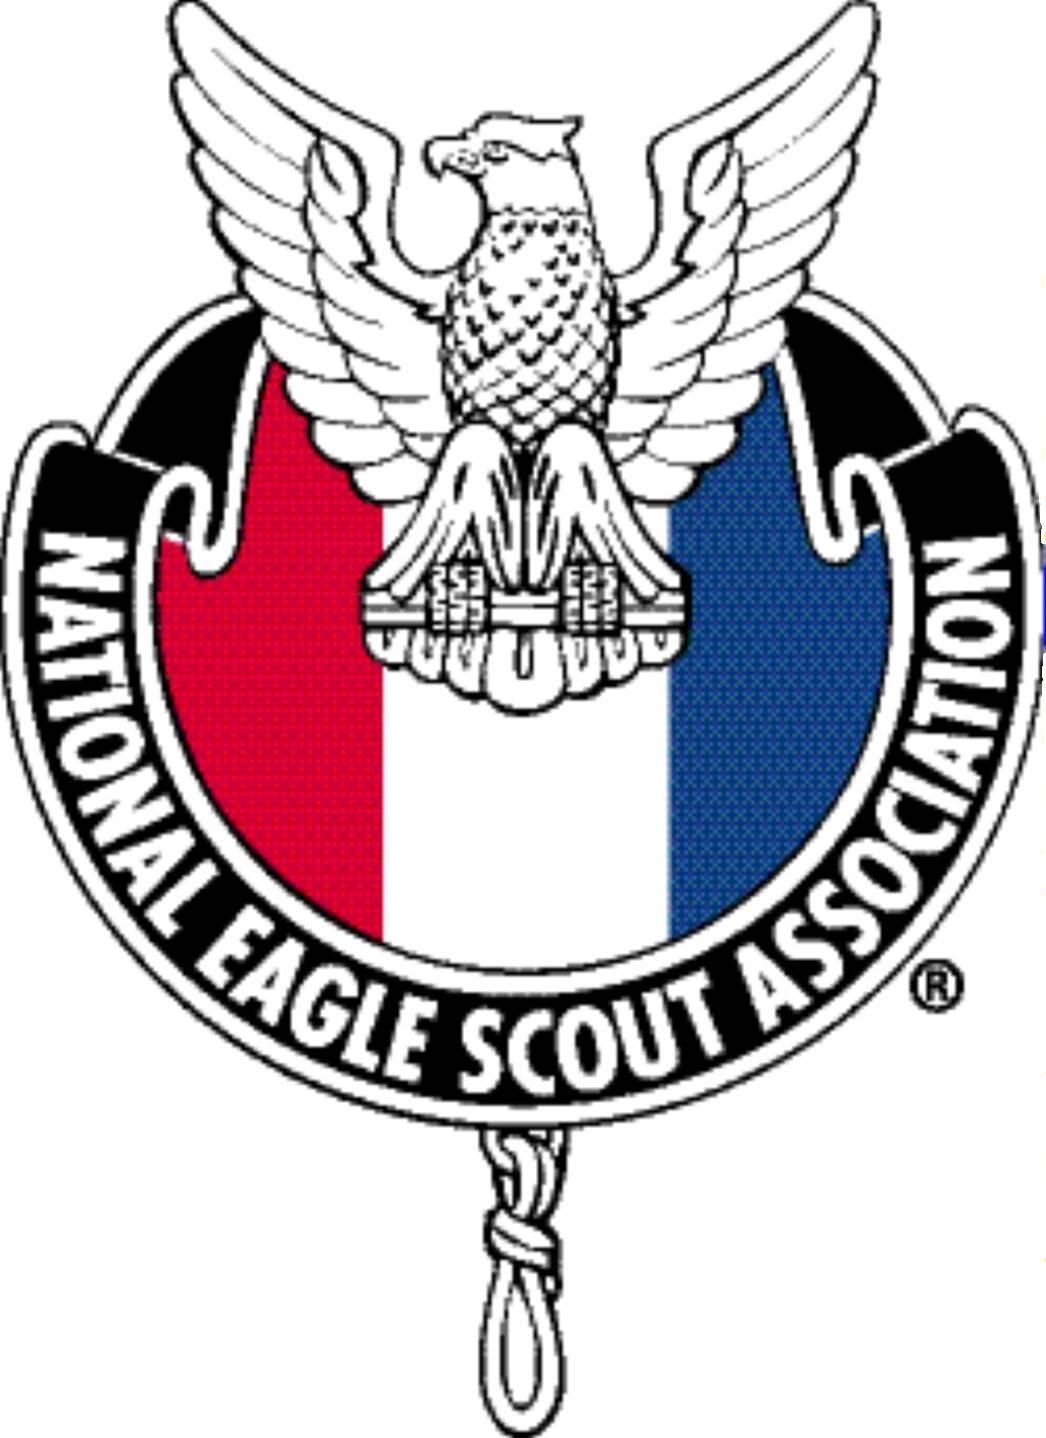 Eagle Scout Logo Monday Memo 3 14 11